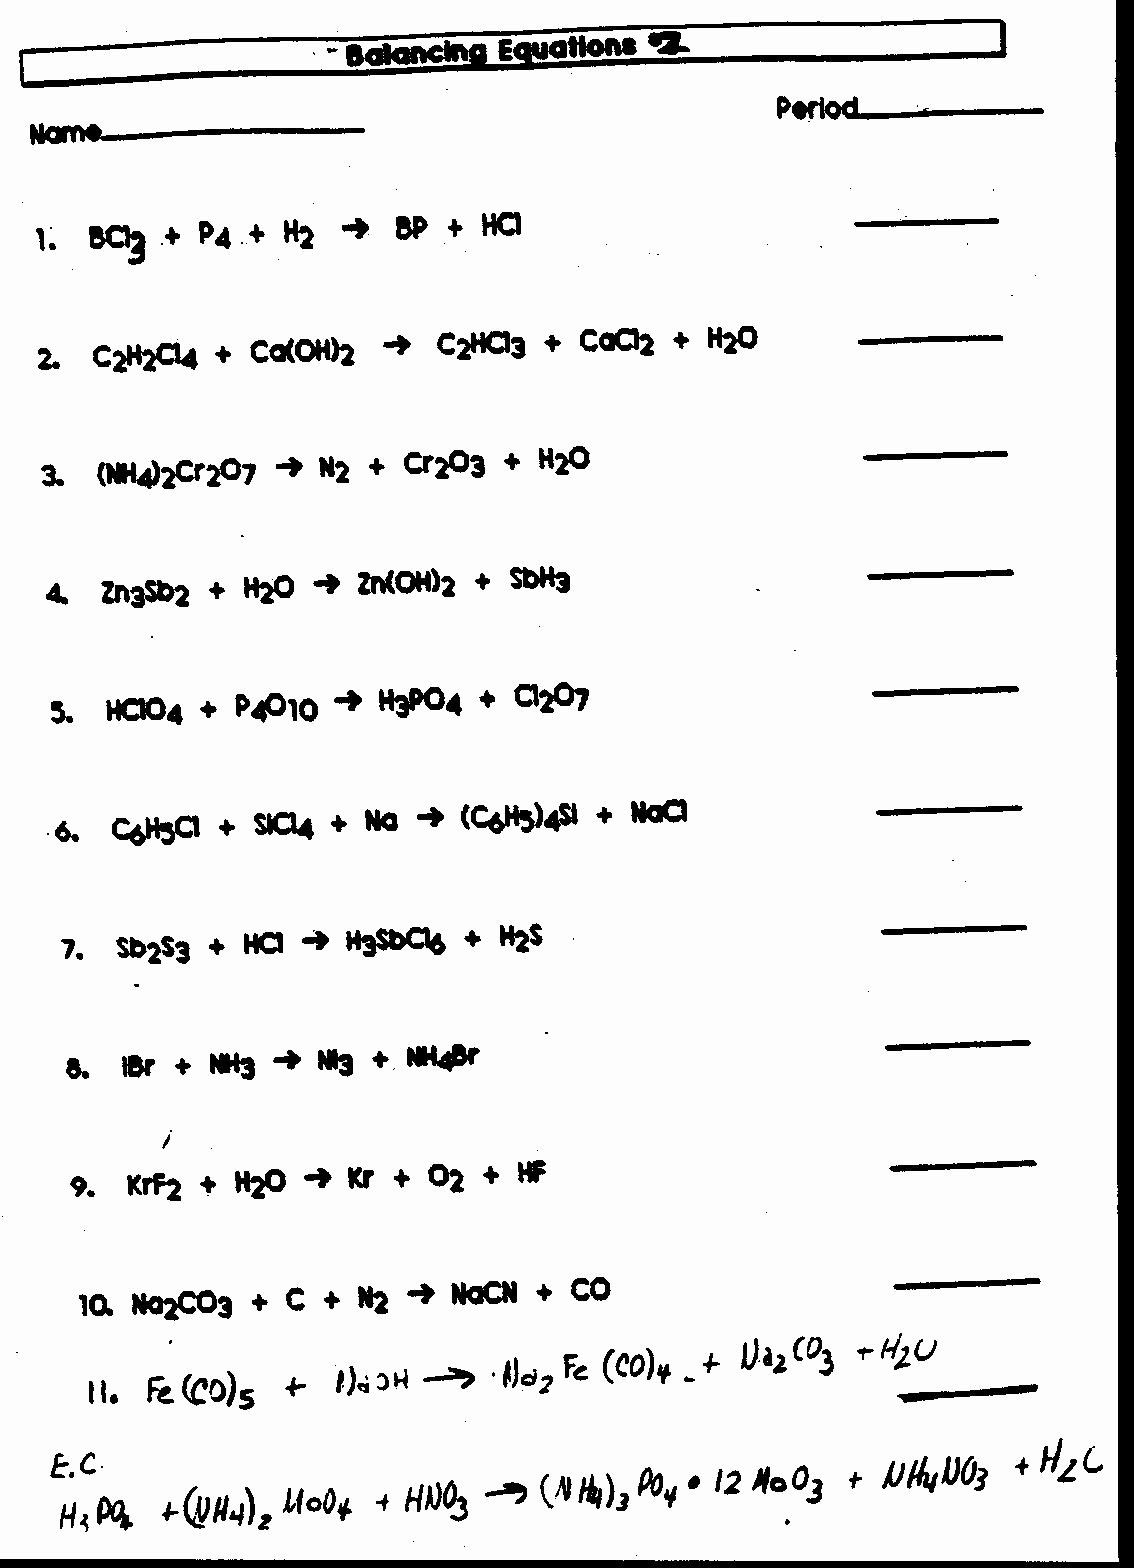 Balancing Equations Worksheet Answers Inspirational